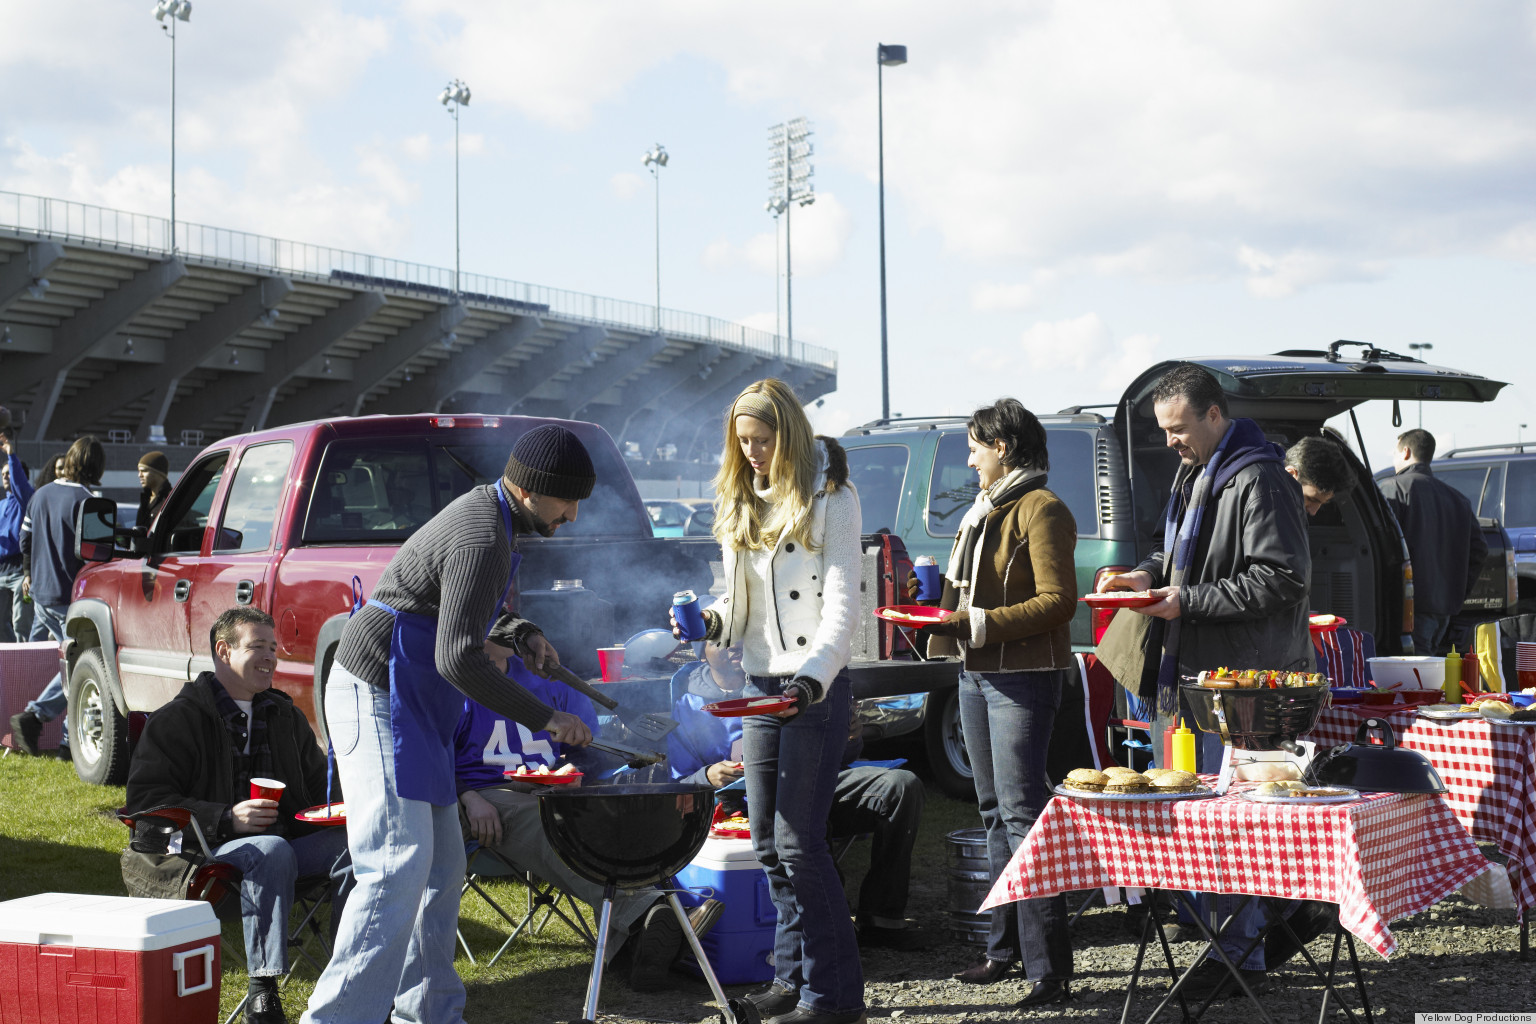 Ten Top Tailgating Tips Source: Huffington Post